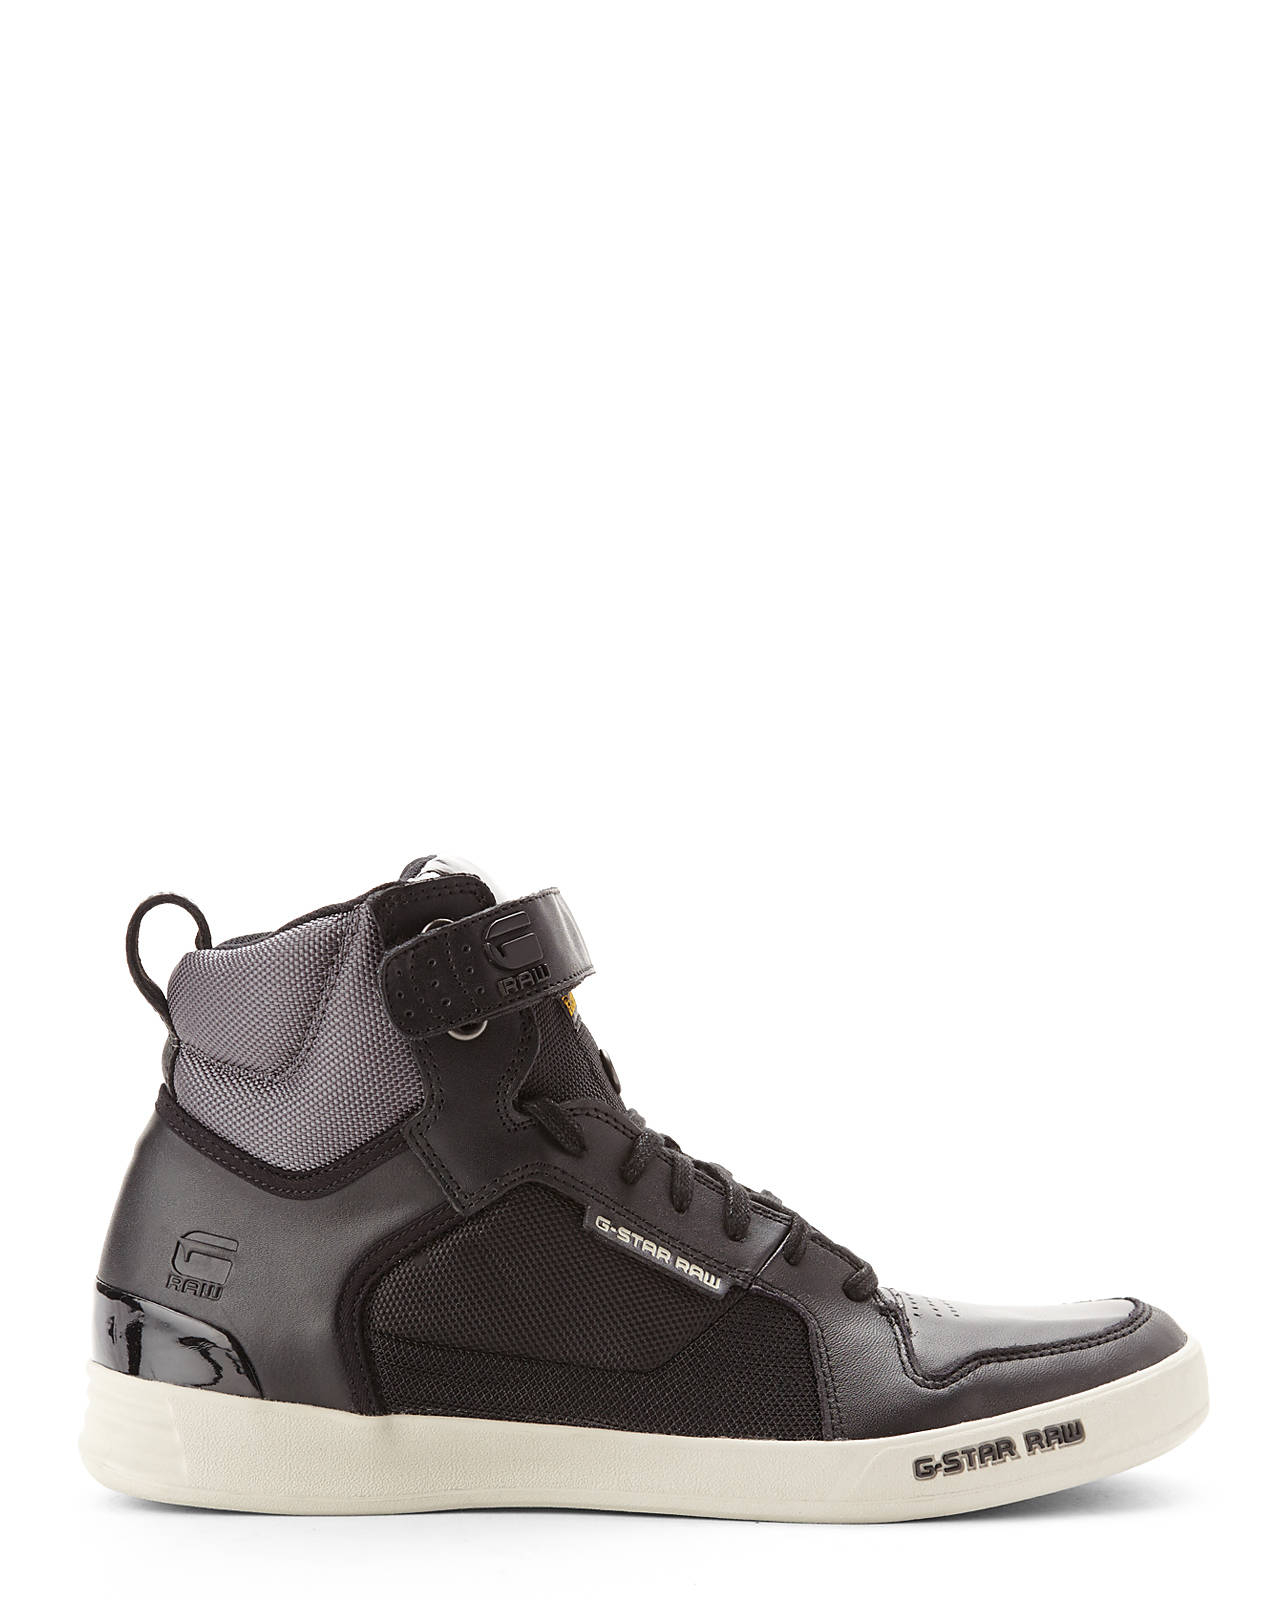 Lyst - G-Star Raw Black Grey Yard Bullion High-Top -7023